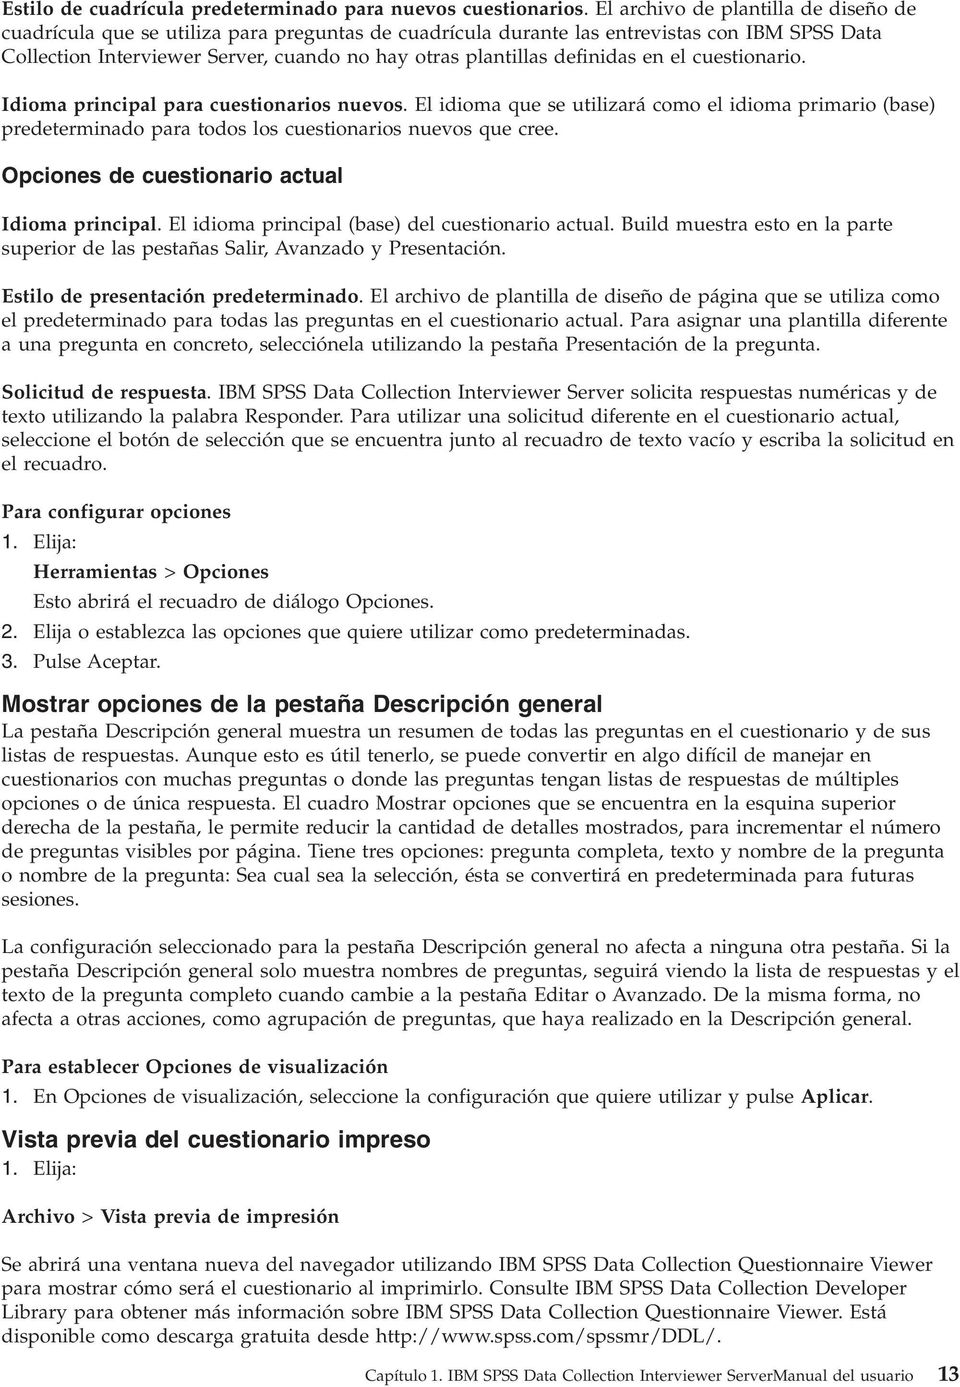 Guía del usuario de IBM SPSS Data Collection Interviewer Server PDF